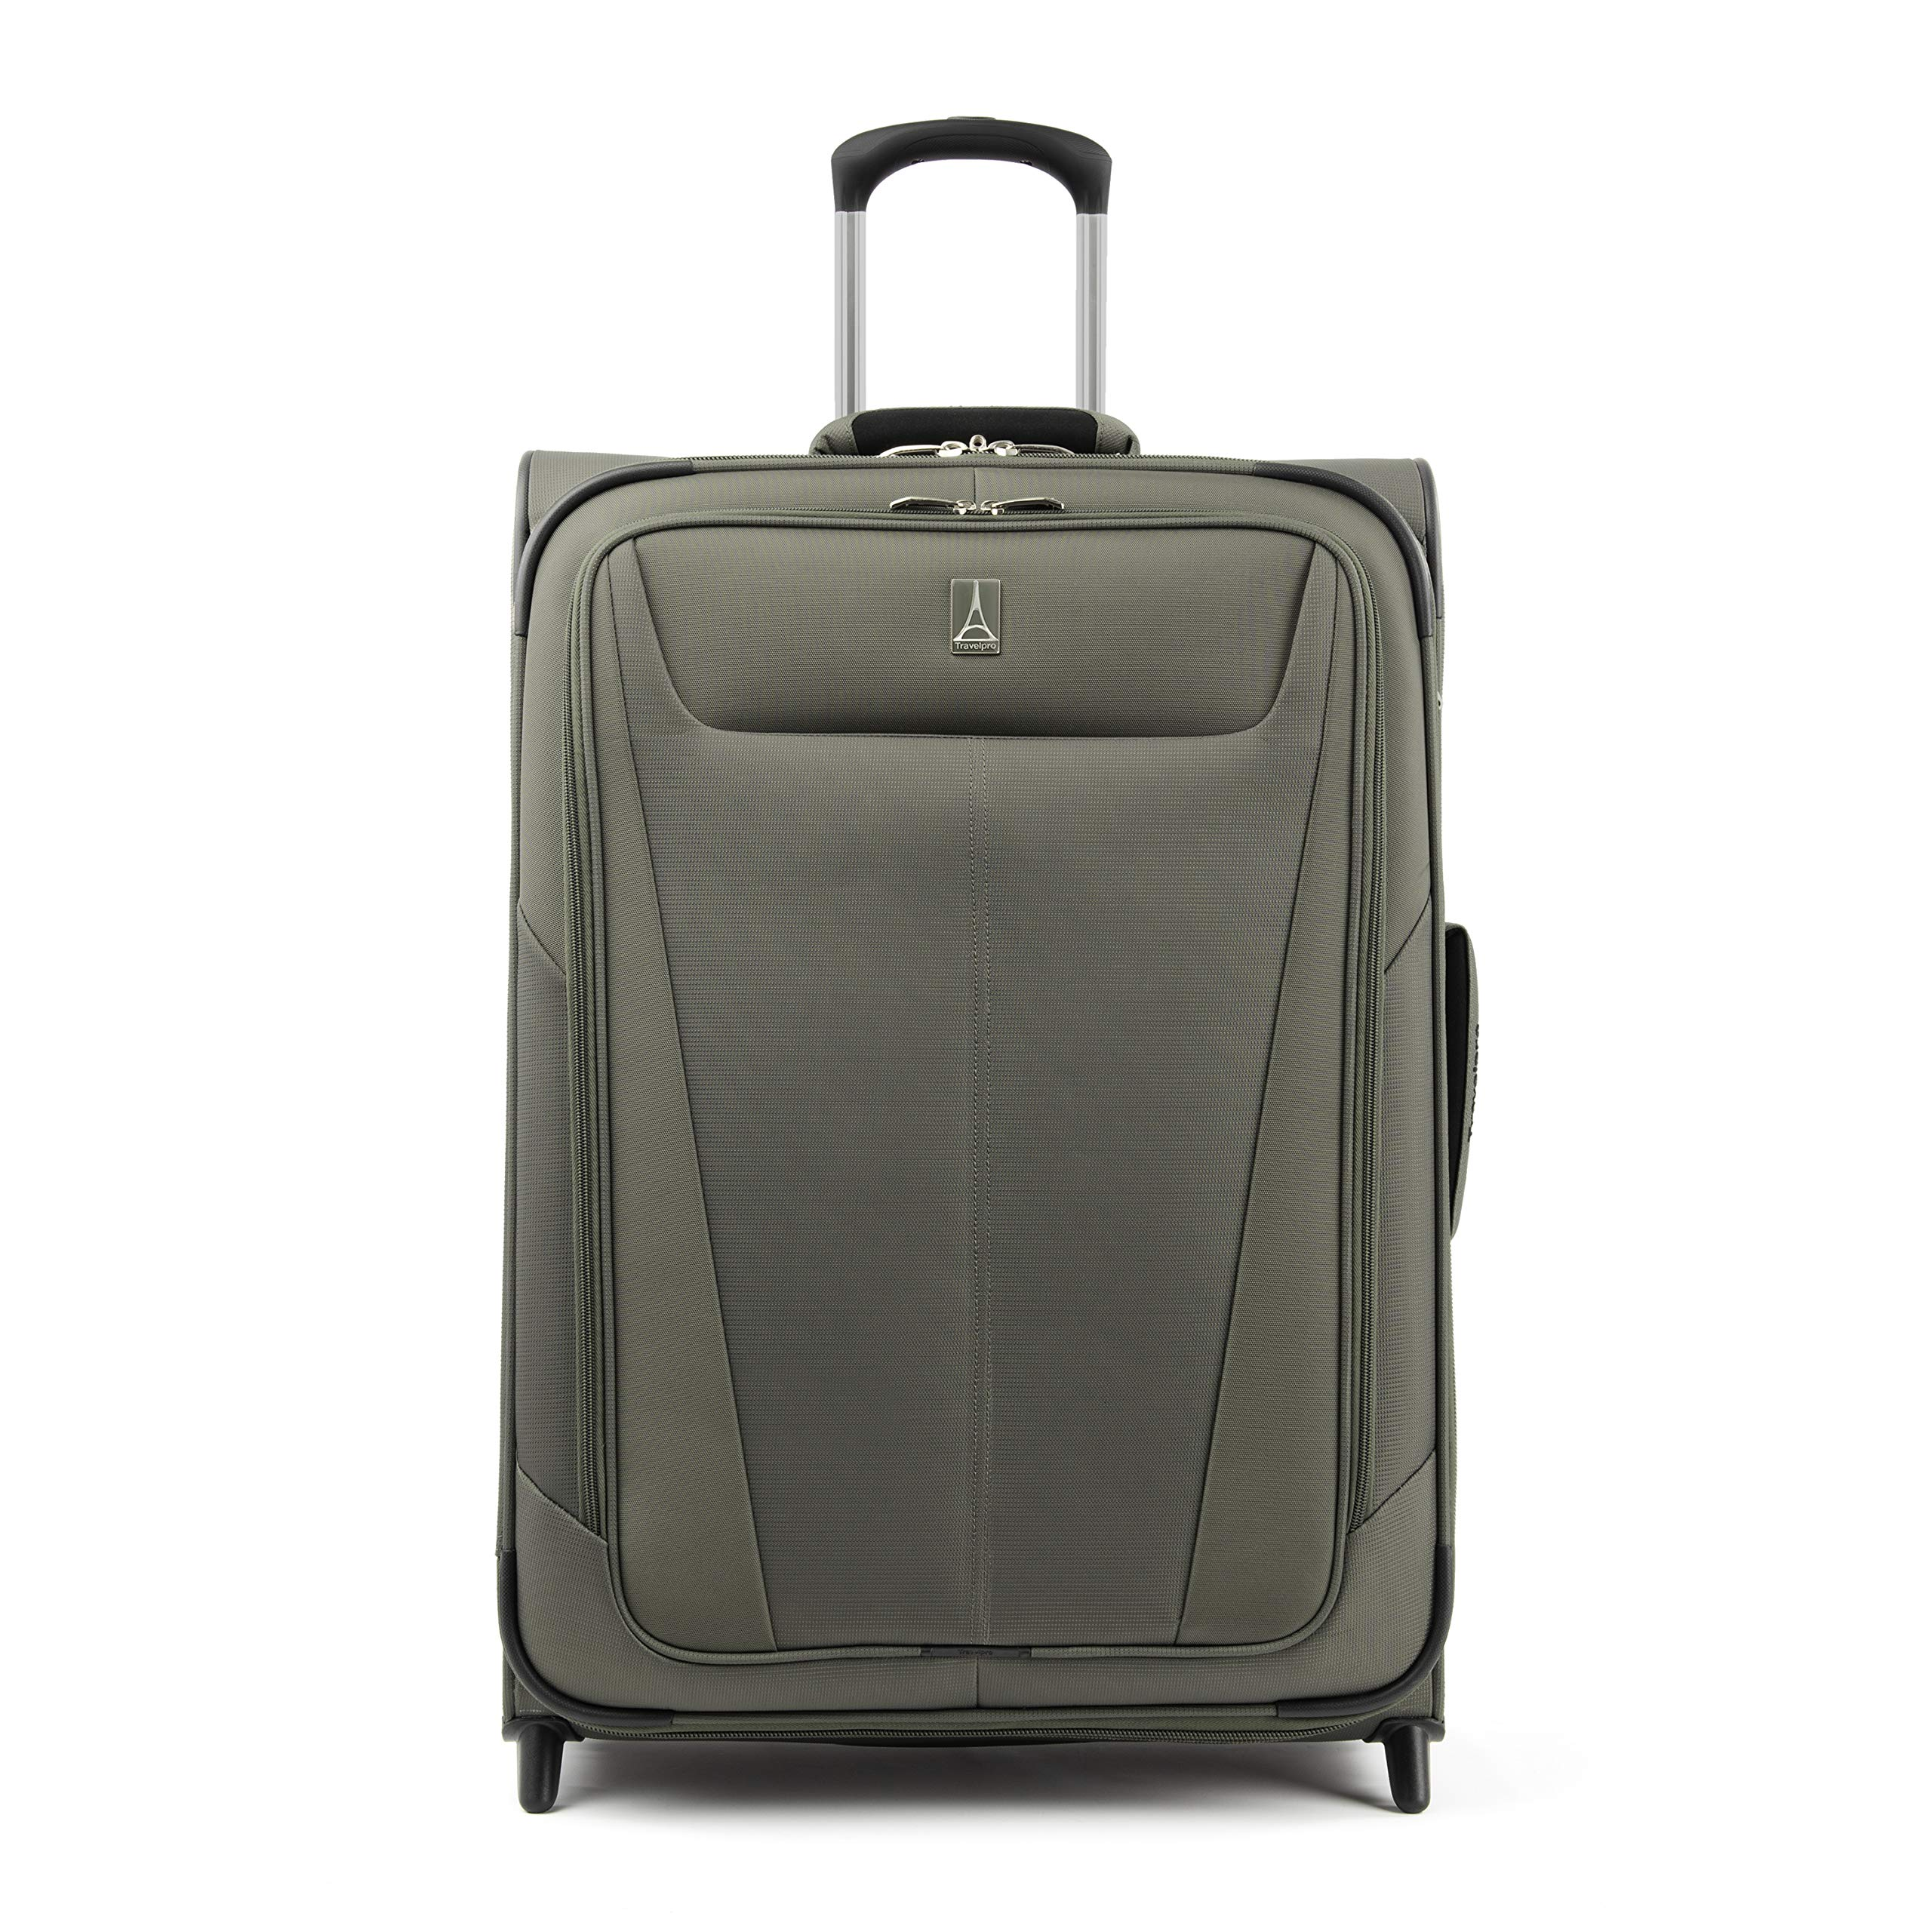 Travelpro Lightweight Expandable Rollaboard Suitcase